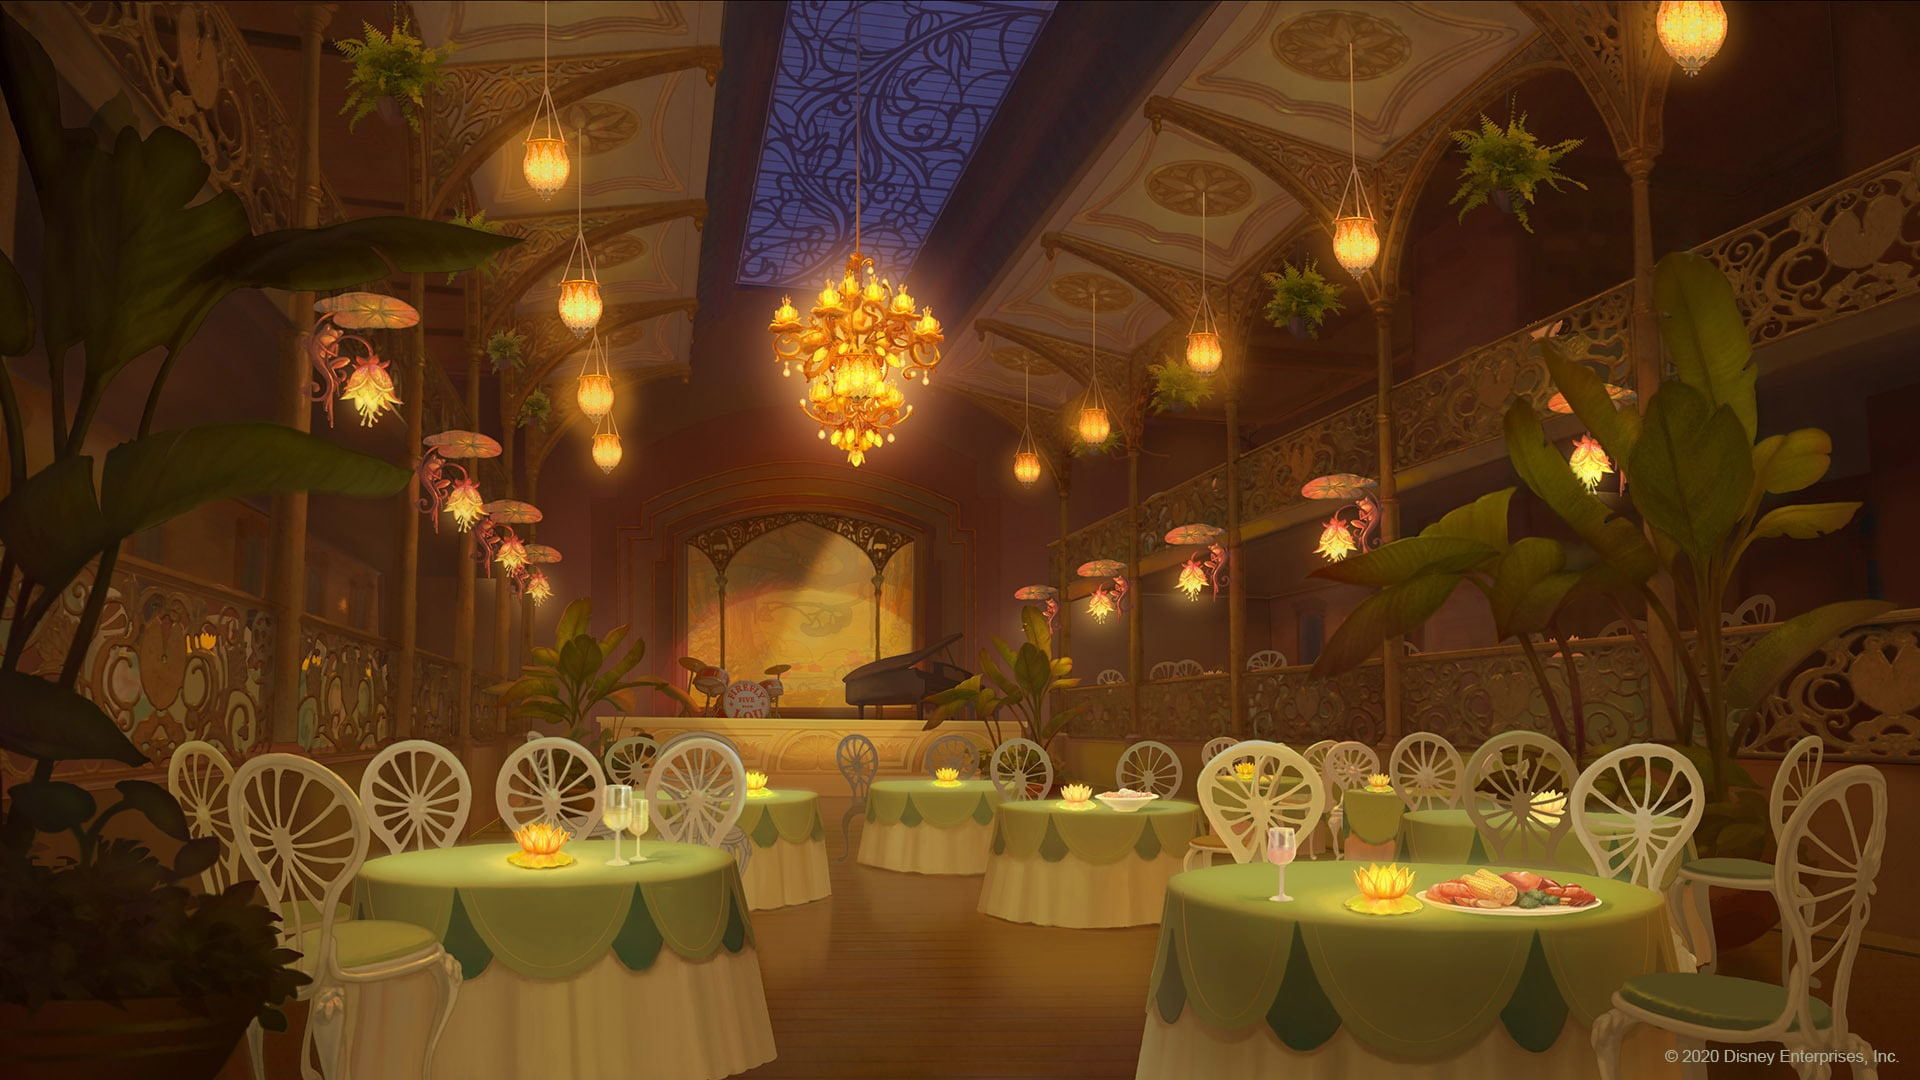 The Princess and the Frog virtual background